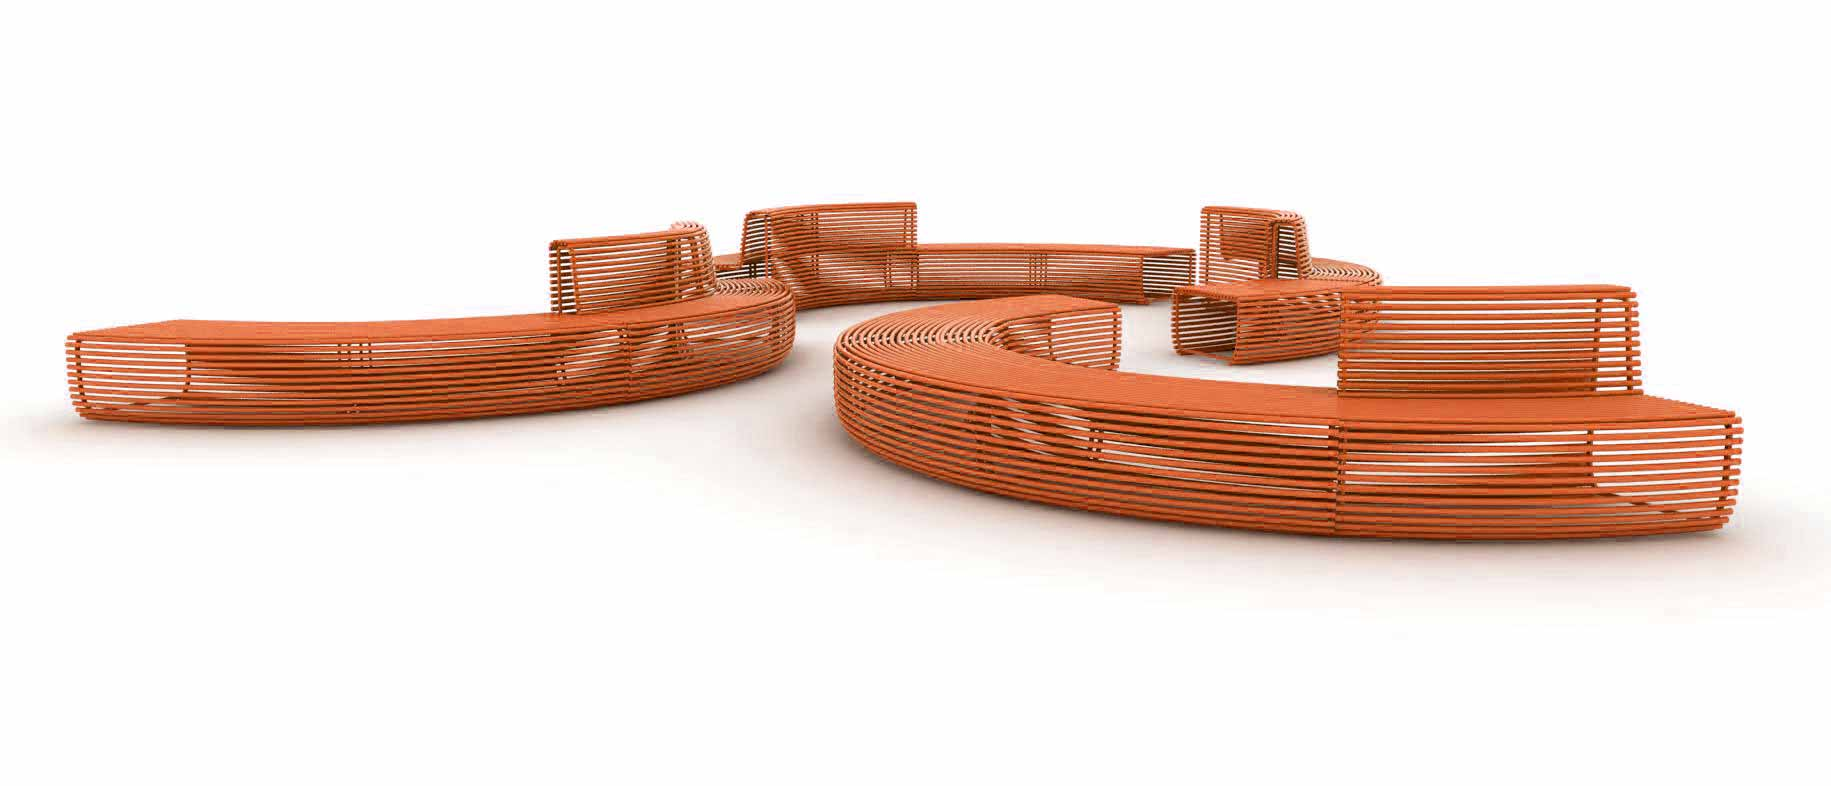 Dynamic configurations of Rio Outdoor Furnishings